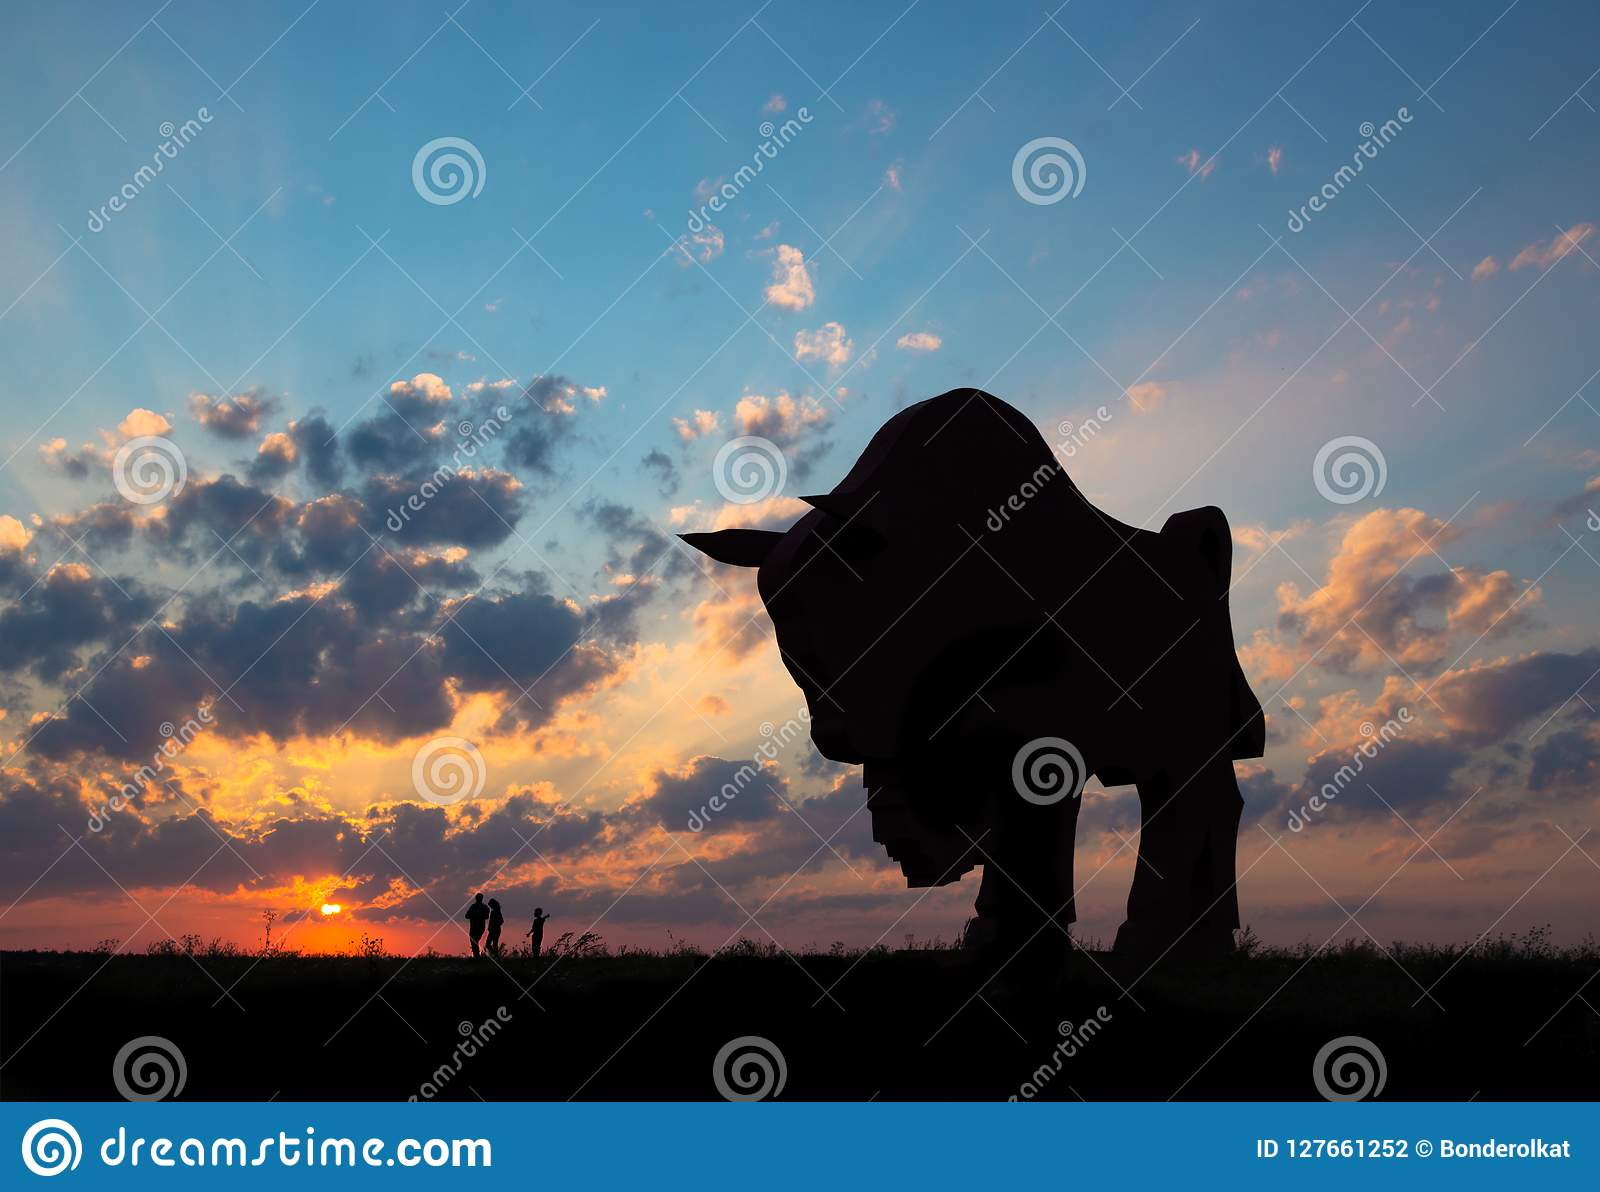 Sunset dawn sun rays over the city sky field statue bison sculpture silhouette family walking near the sun